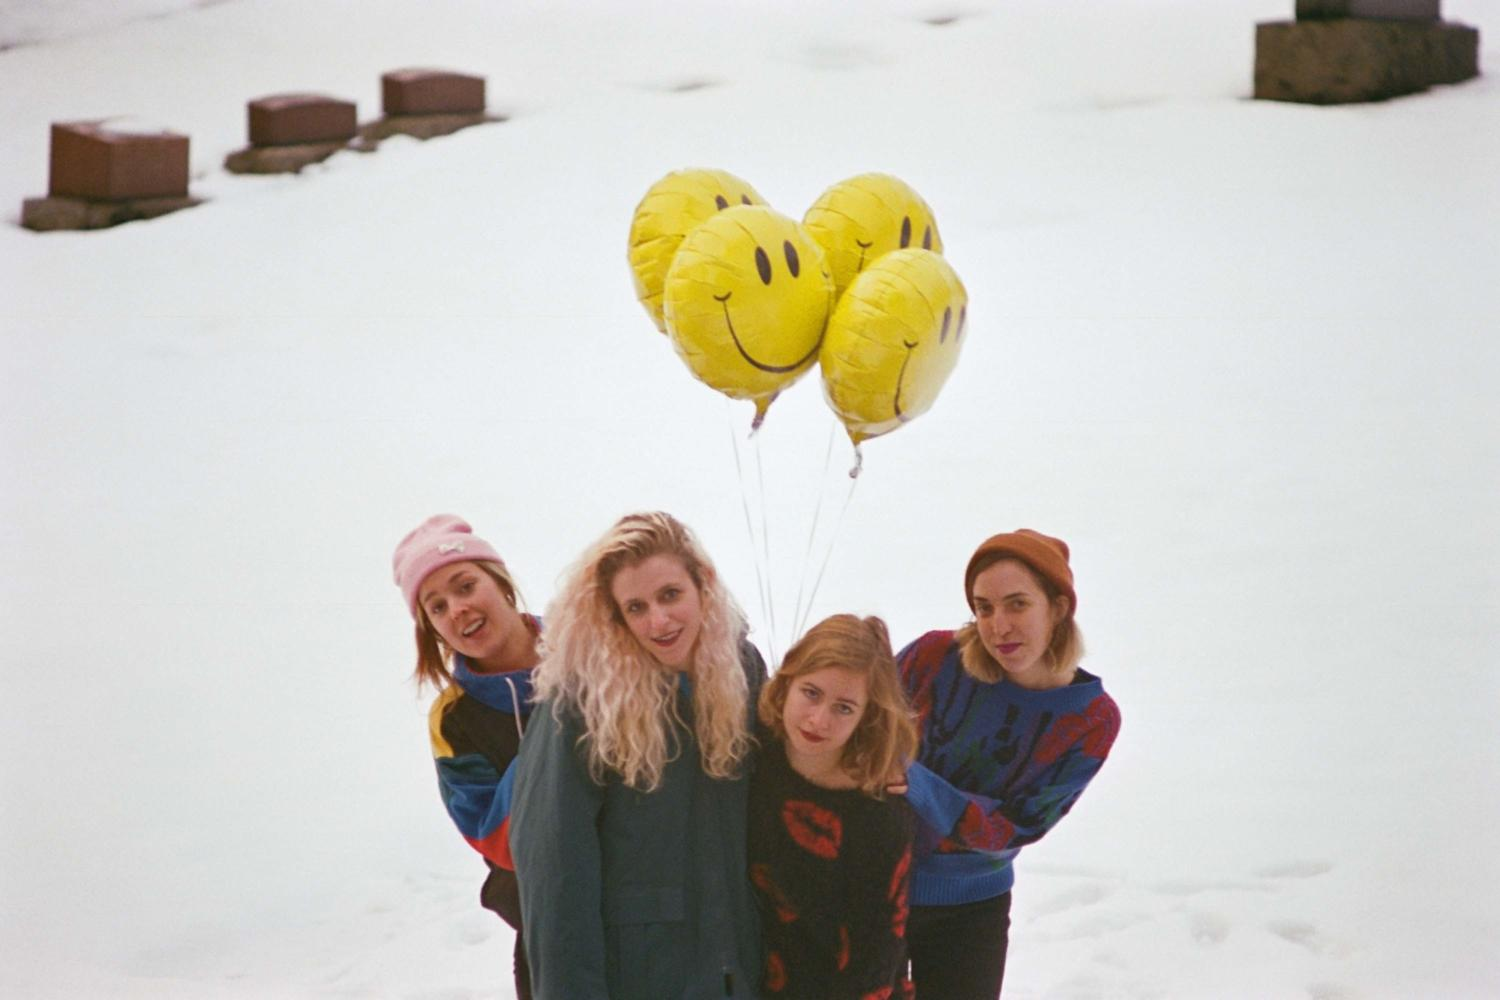 Chastity Belt have a new video for 'Stuck'